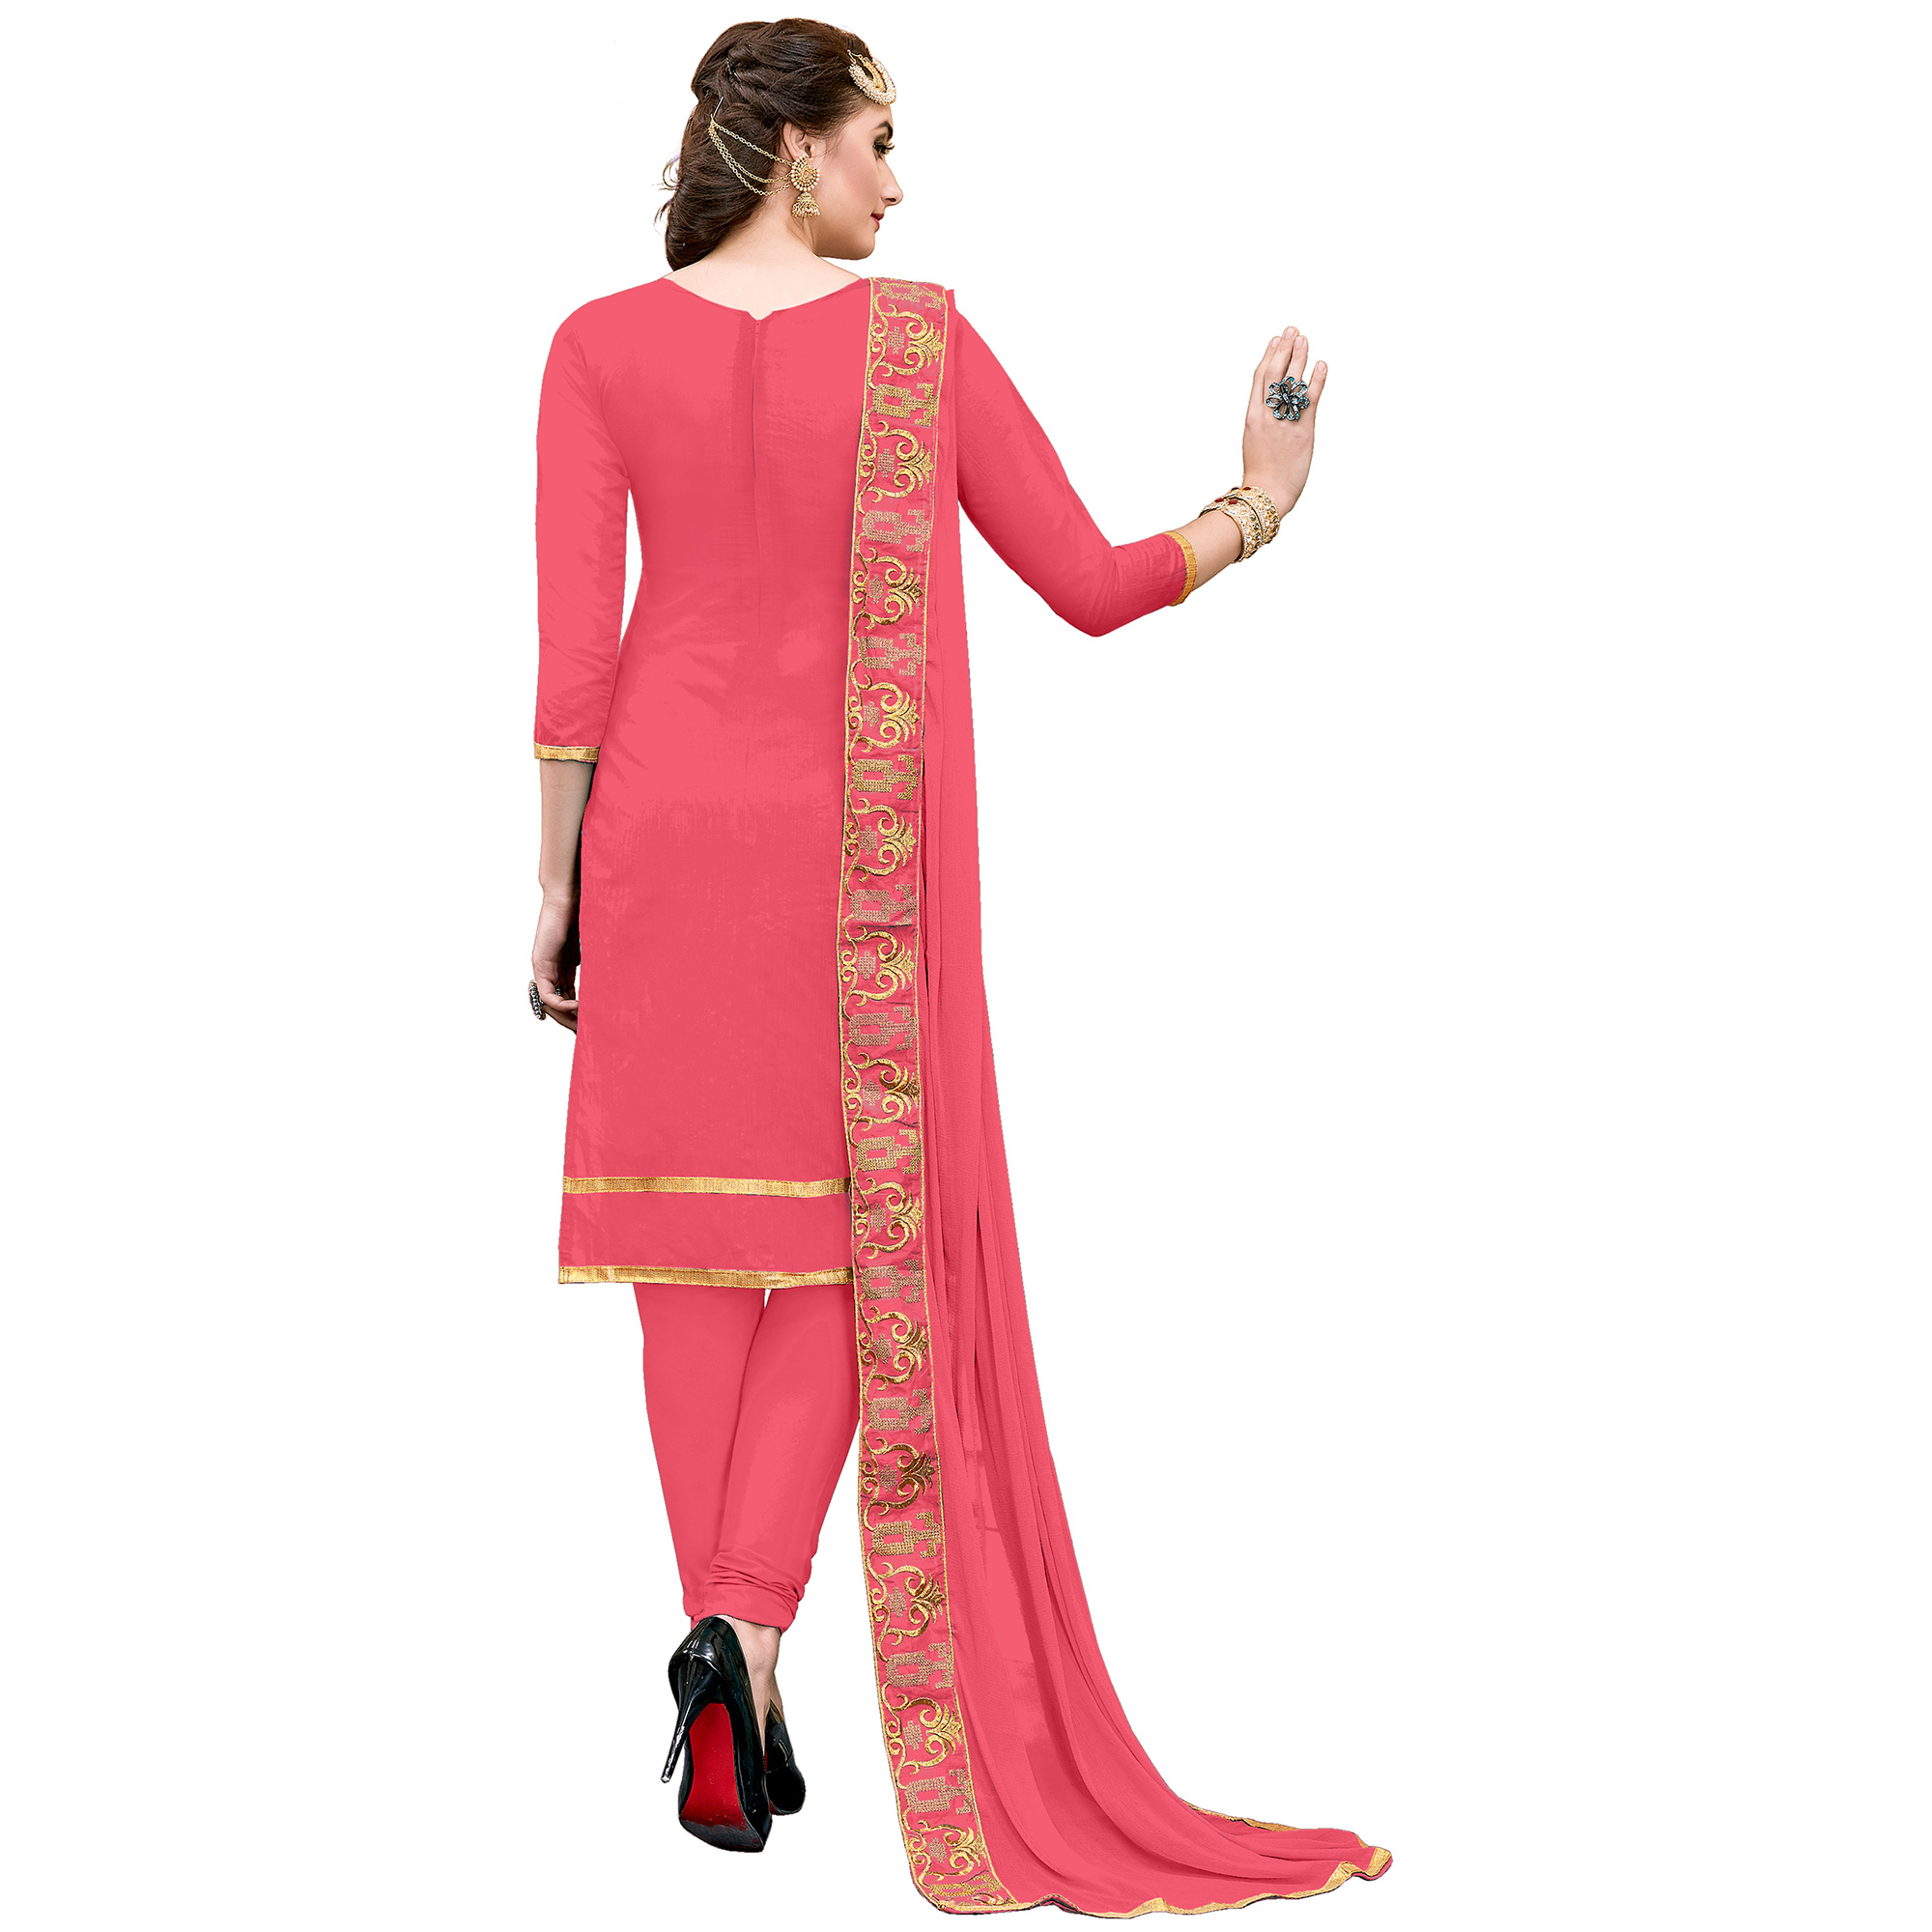 Pleasant Gajri Colored Party Wear Embroidered Modal Dress Material